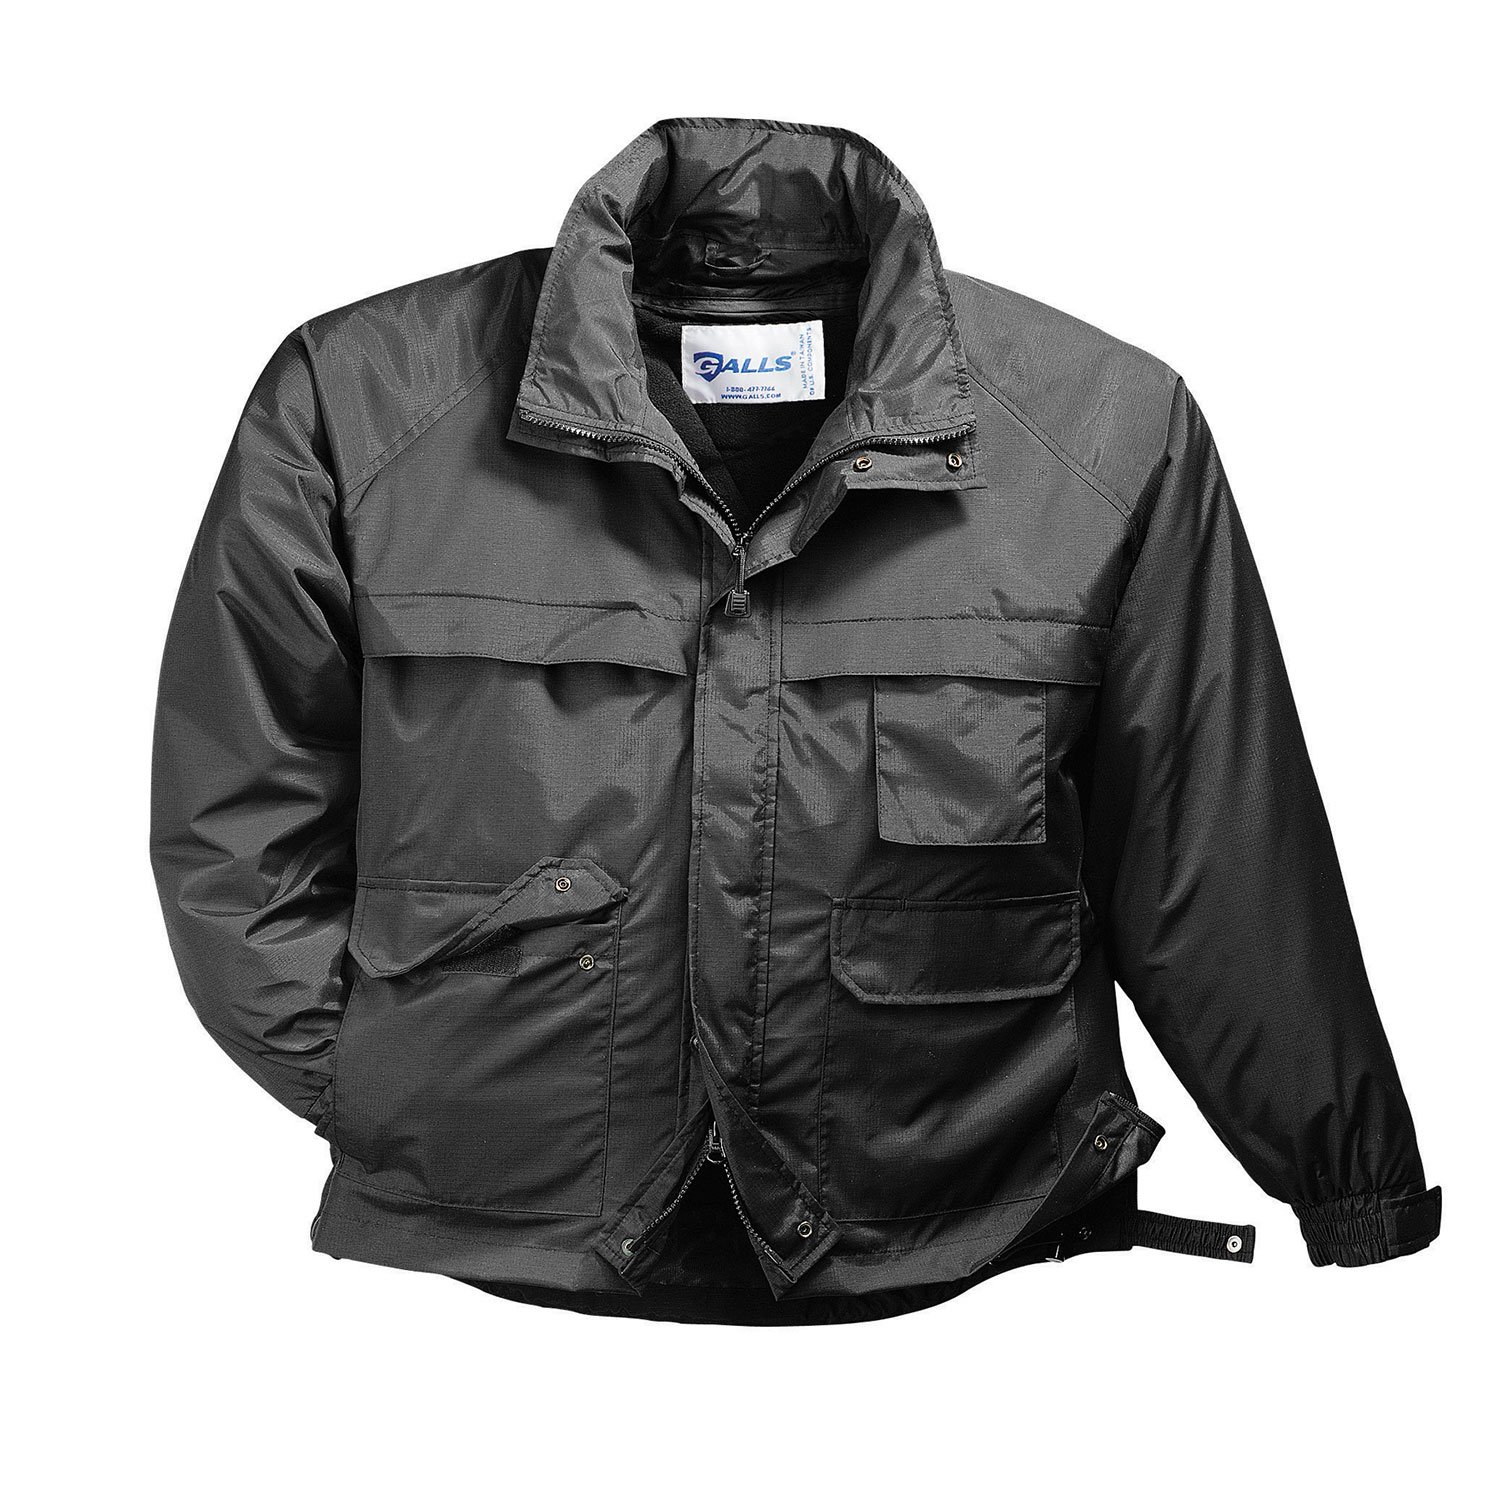 Galls Heavyweight Duty Jacket